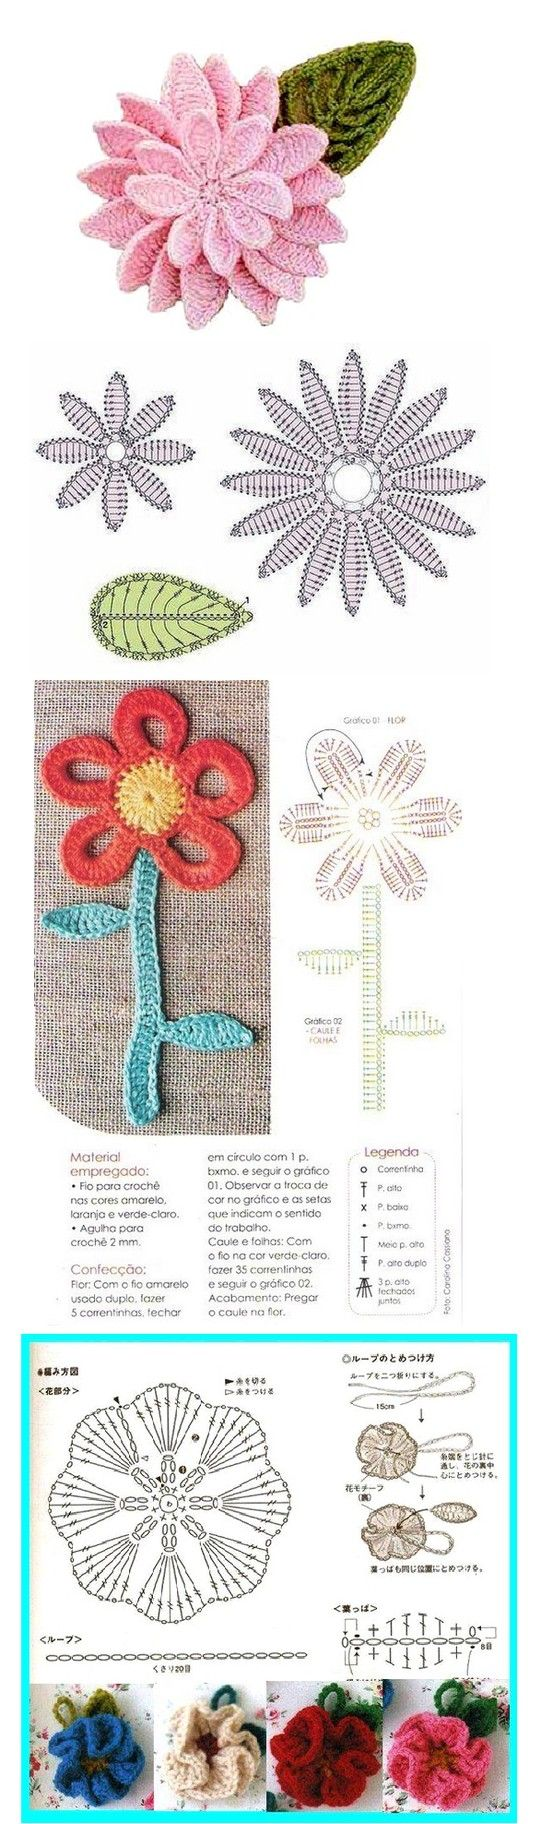 Is it spring already? nice crochet!